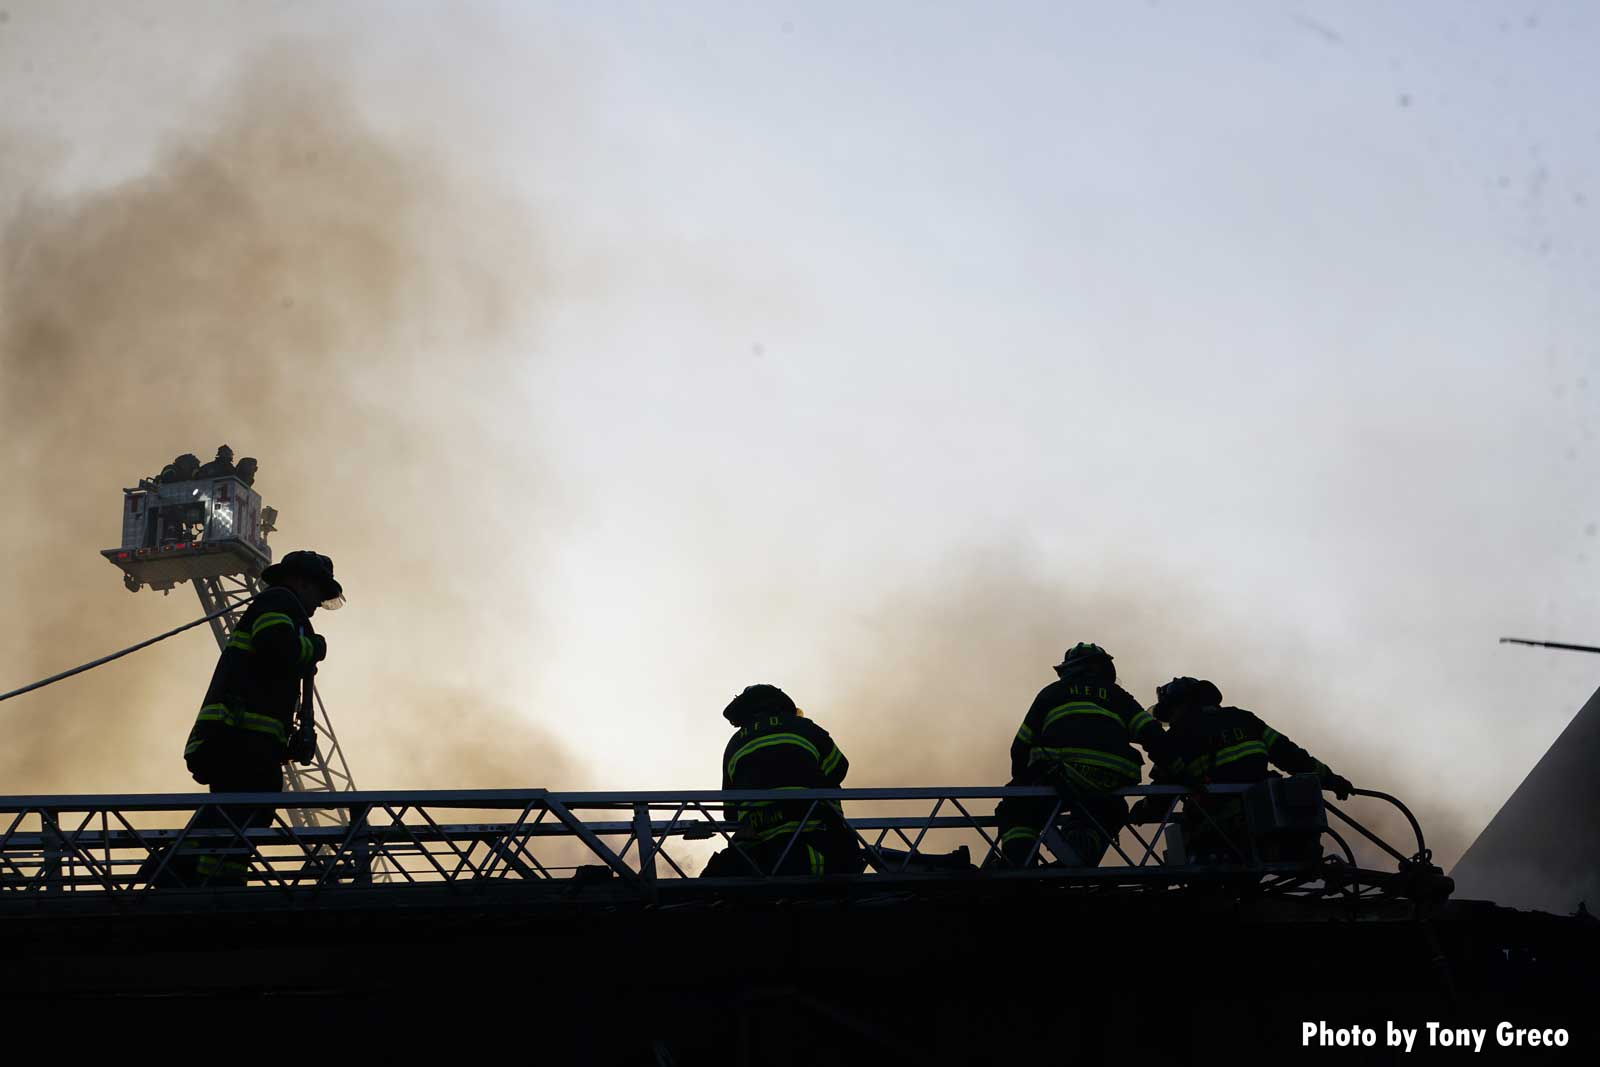 Firefighters on an aerial device with smoke in the background